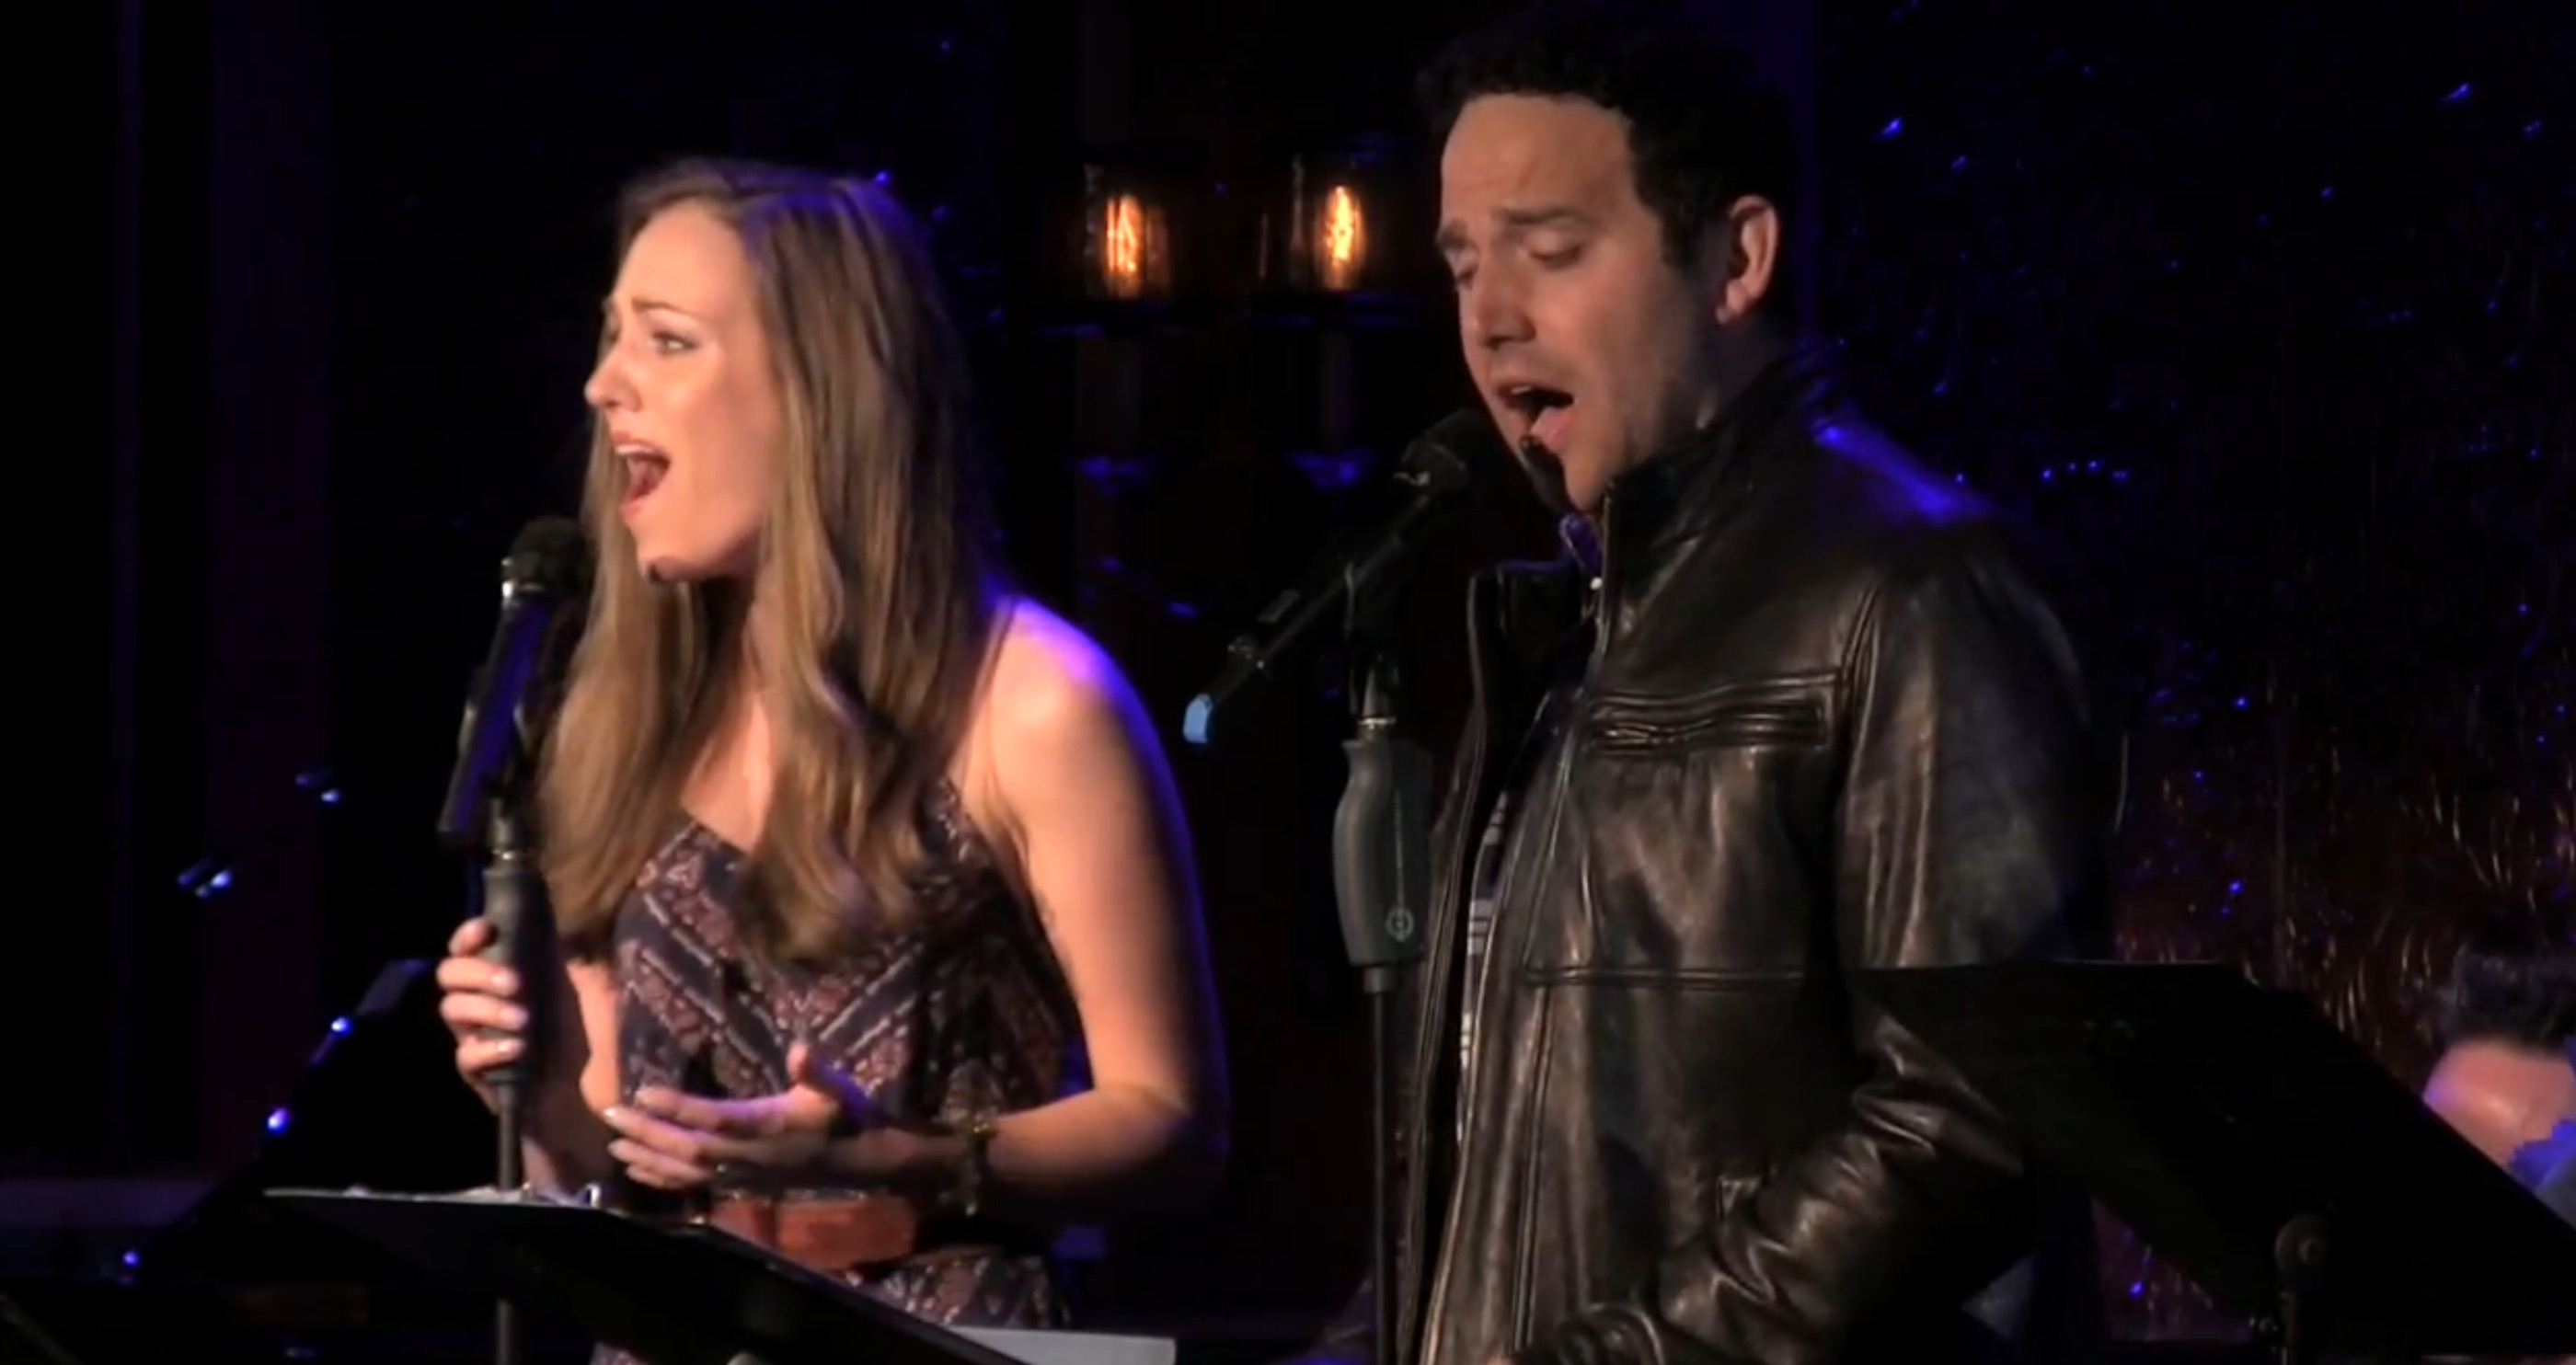 BWW TV Exclsuive: Watch Laura Osnes, Santino Fontana & More Sing THE LEGEND OF NEW YORK